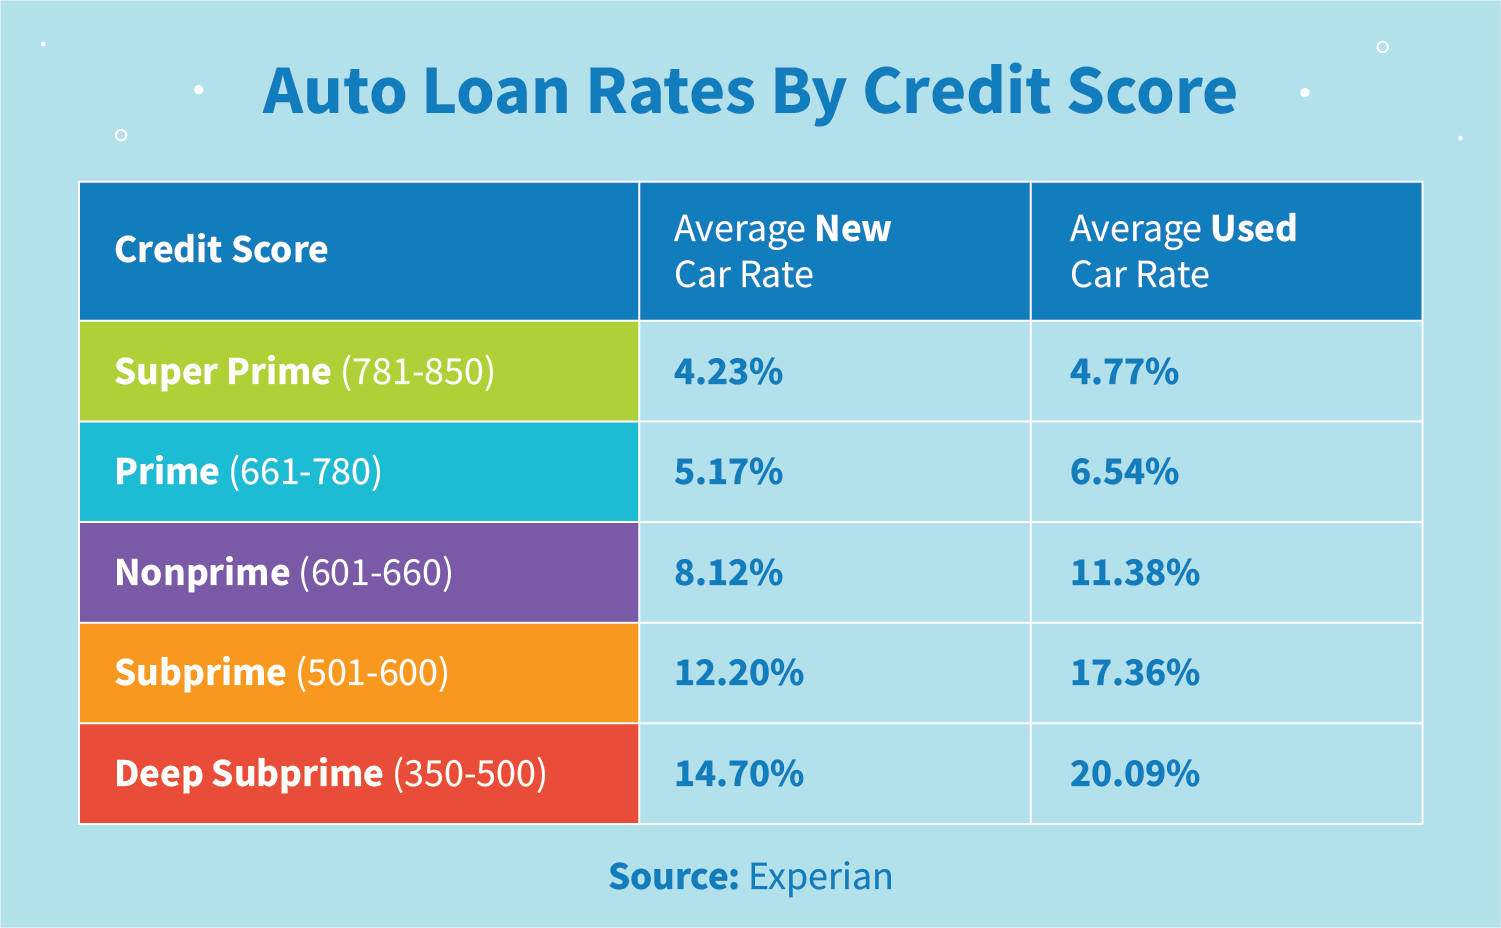 A table listing auto loan rates by credit score